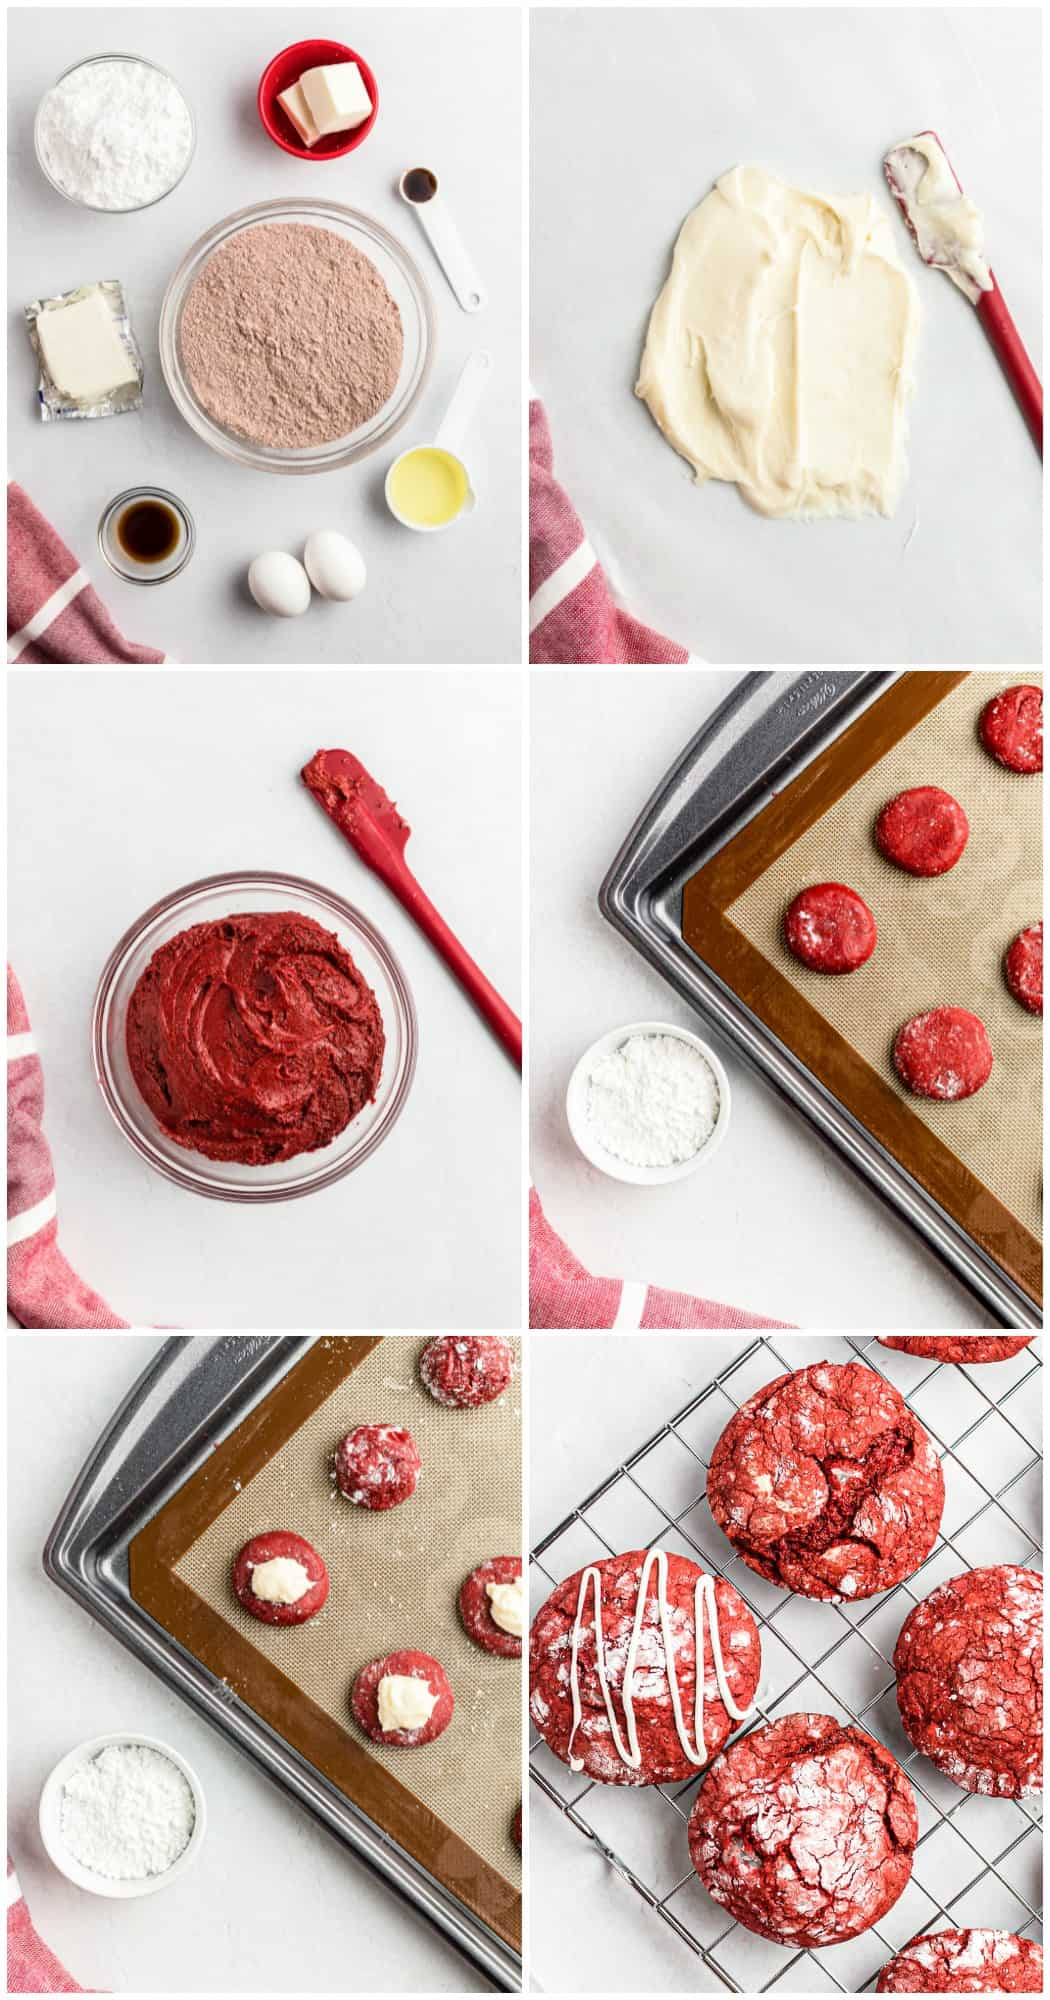 step by step photos of how to make red velvet cookies